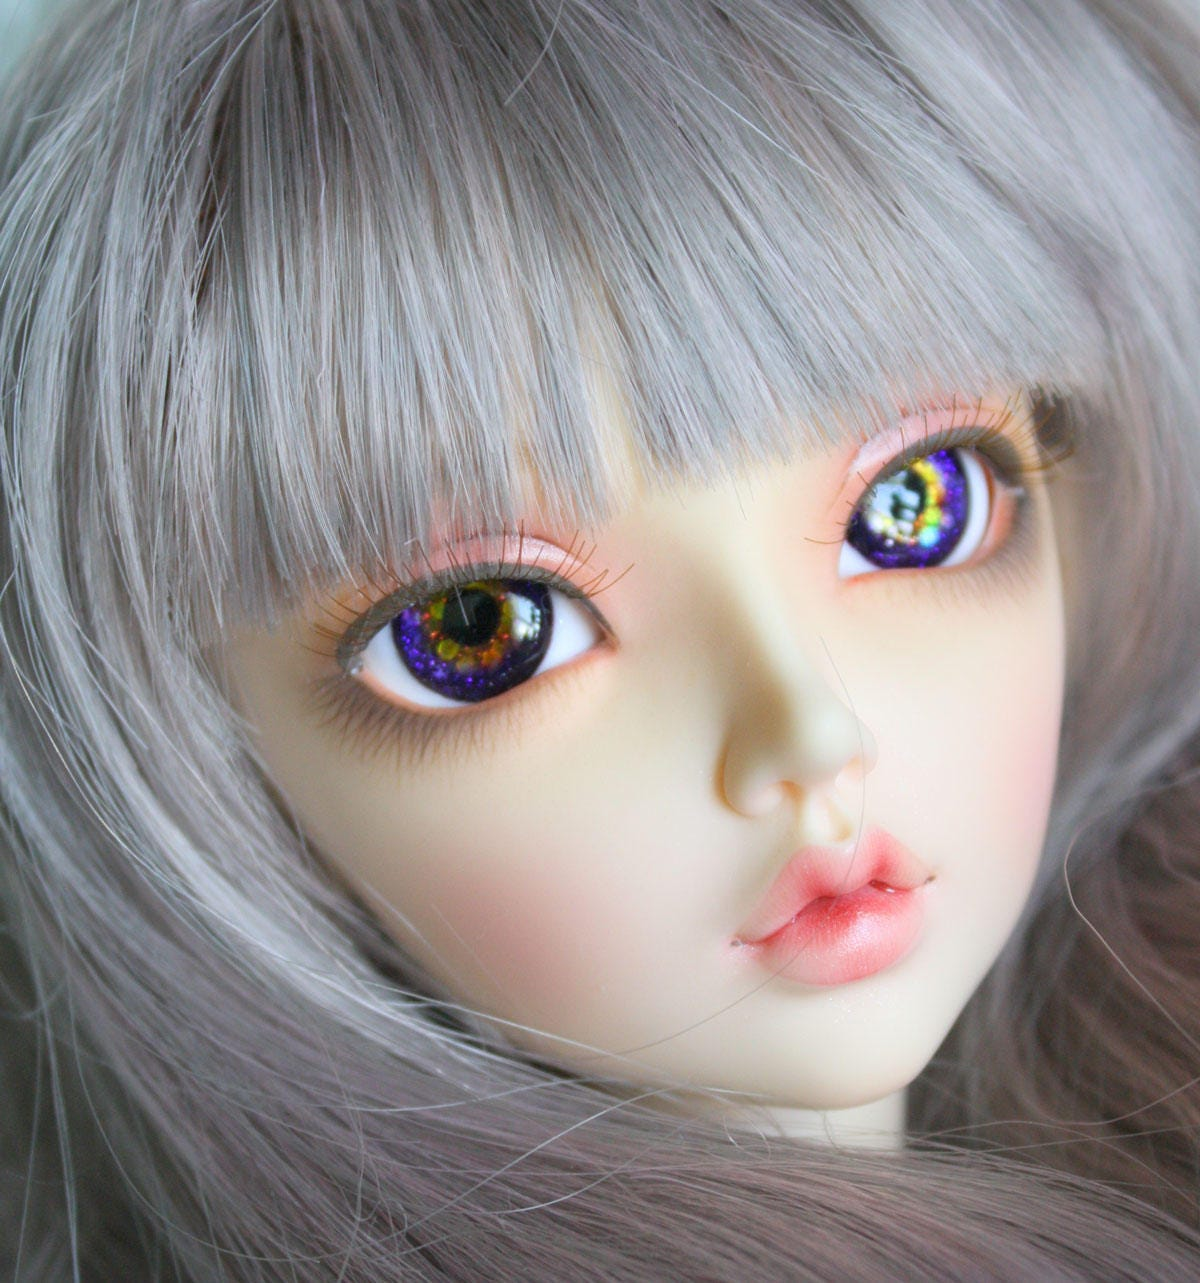 BJD eyes Doll eyes Hand made available in 12141618202224mm Coco Berry Bliss made to order